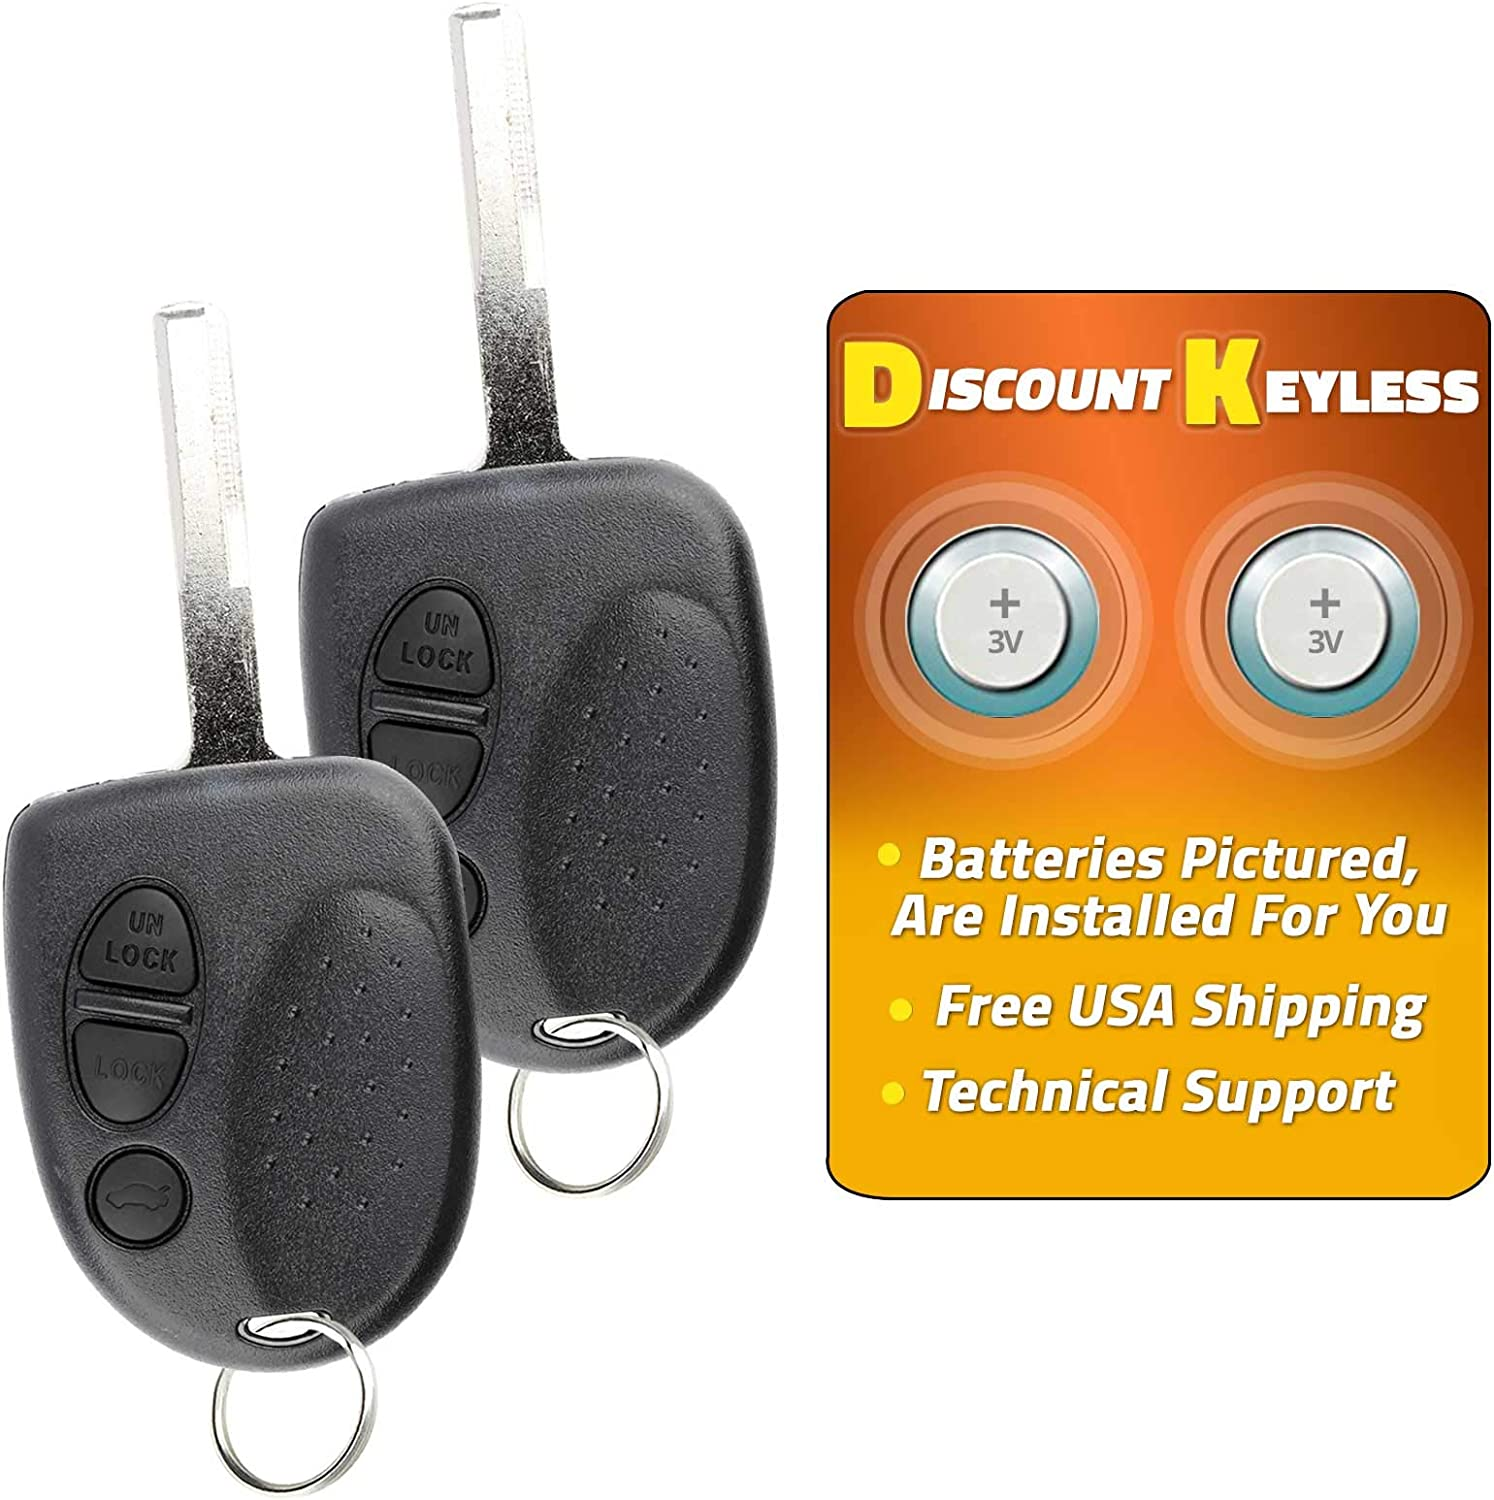 2 Replacement 4 BOTTON Remote Key Fob Keyless Entry For Nissan 2004-2006 Maxima